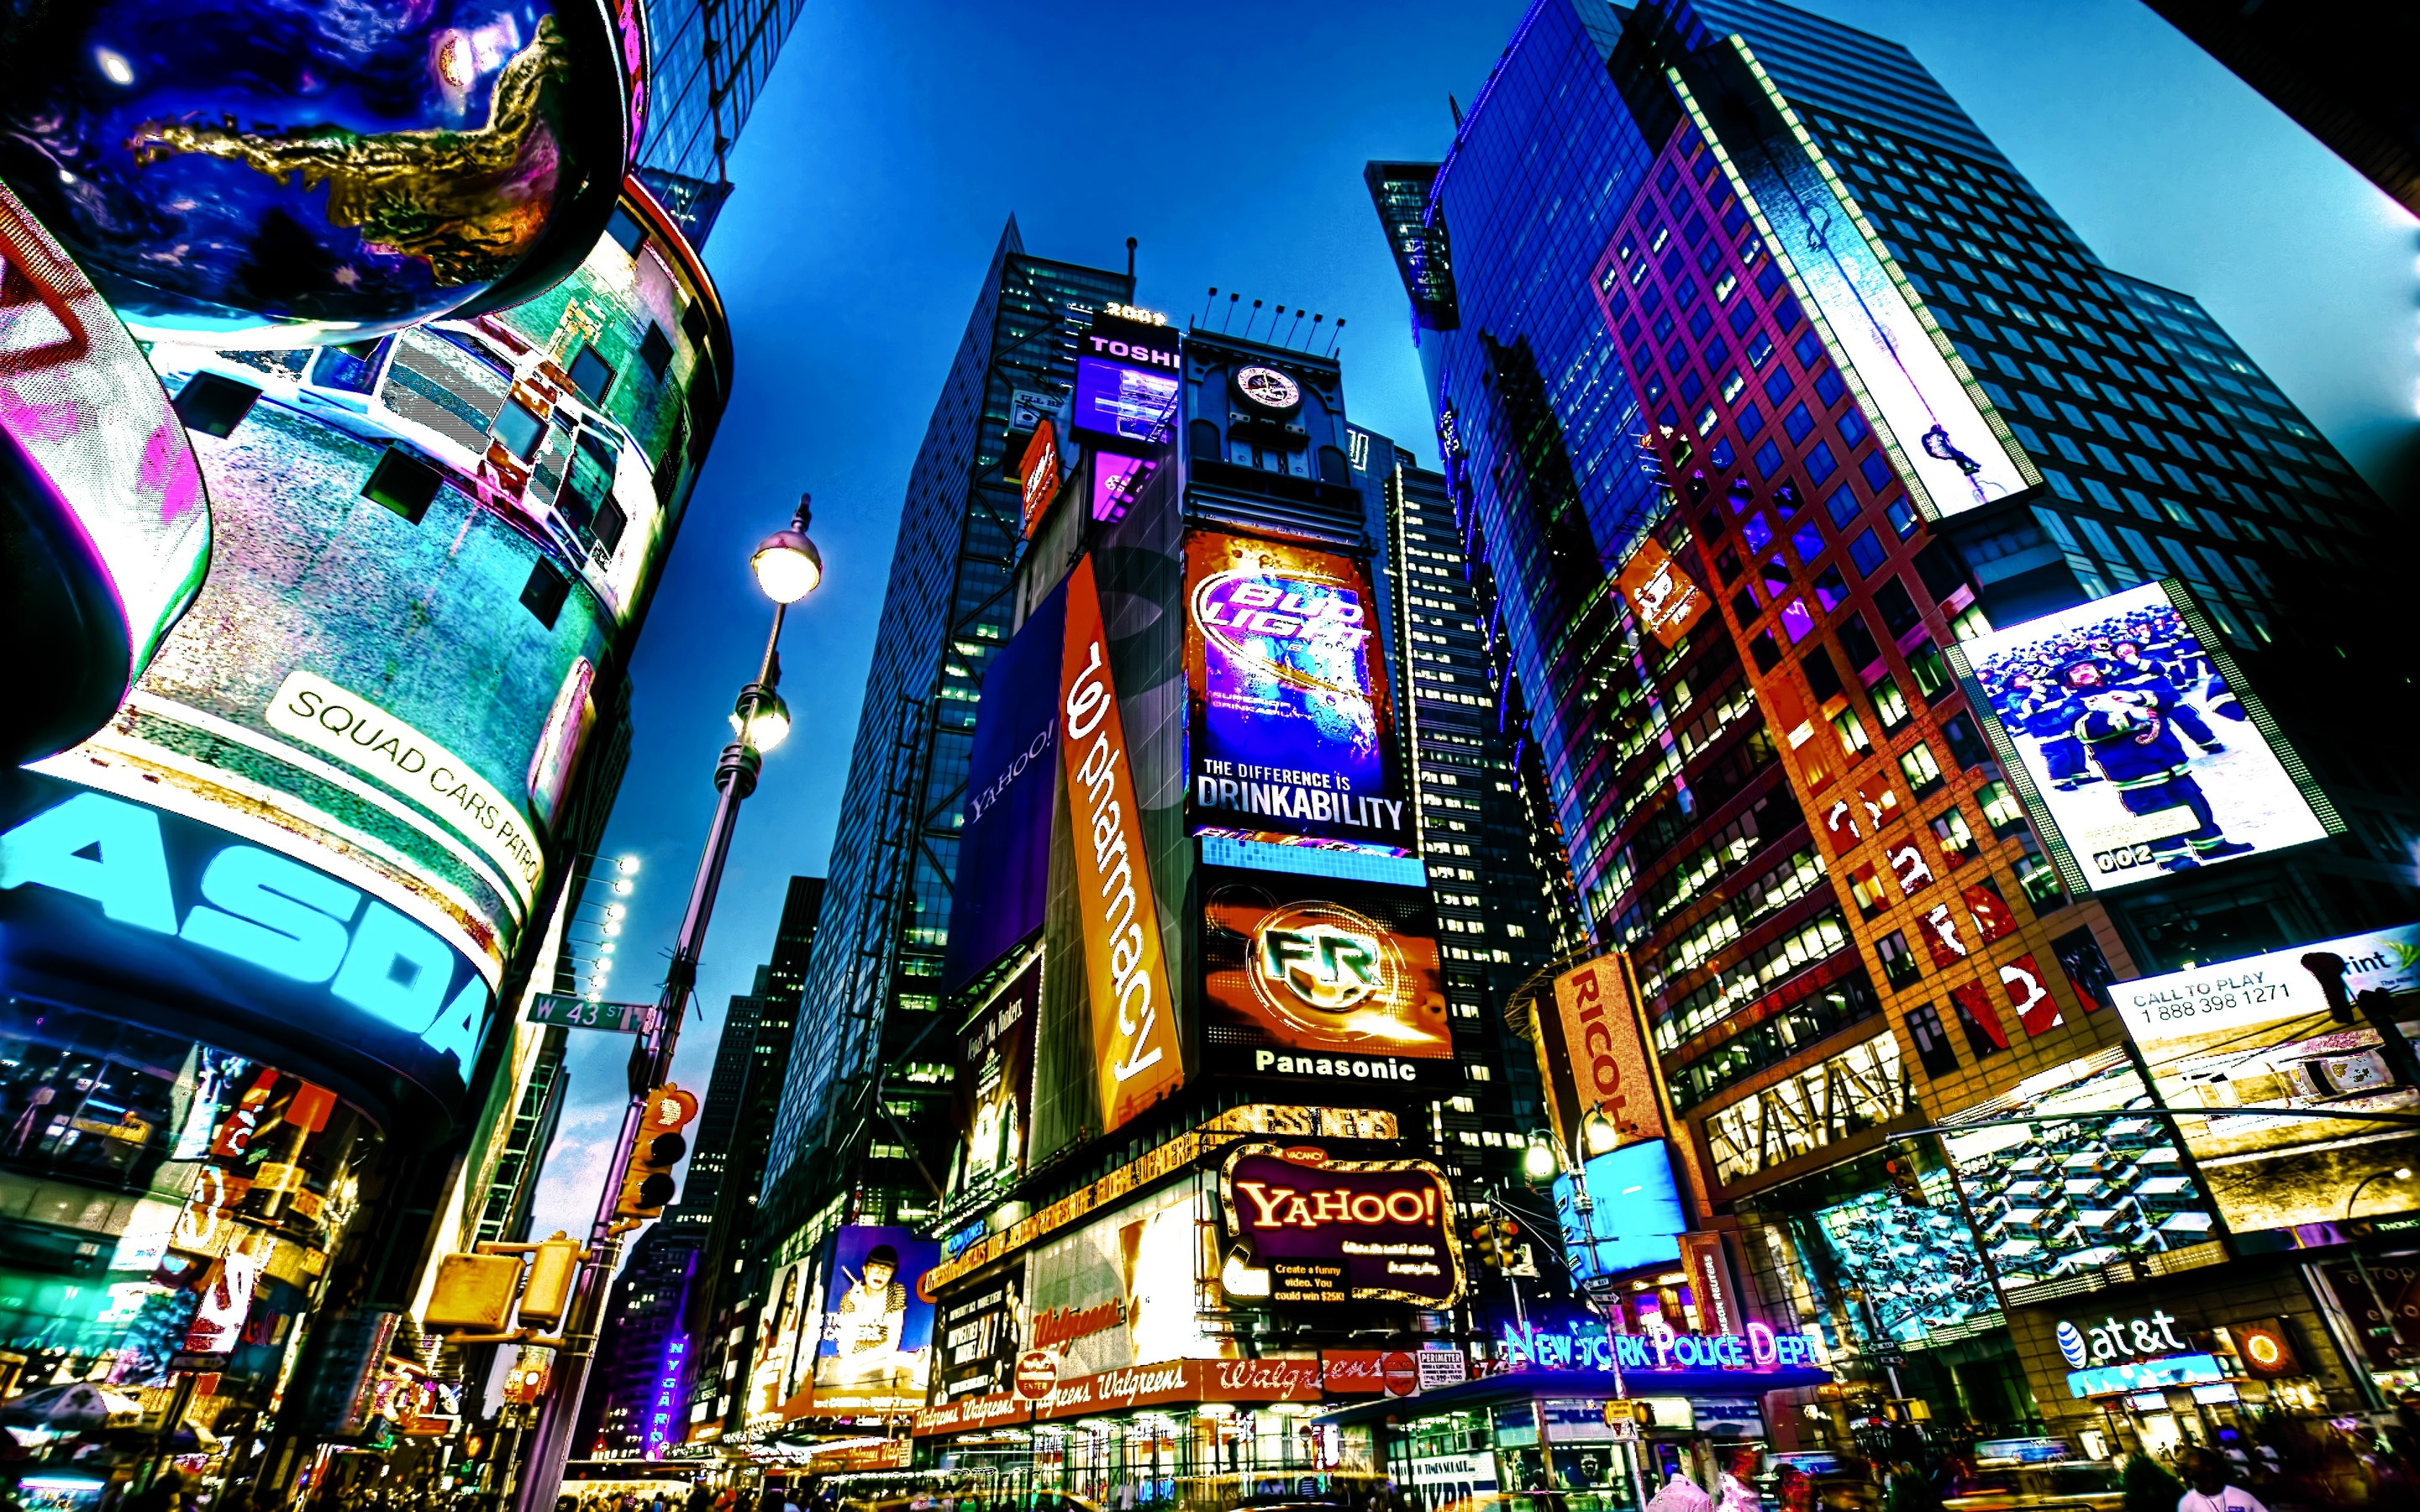 Wallpaper Travel To New York Times Square City Night